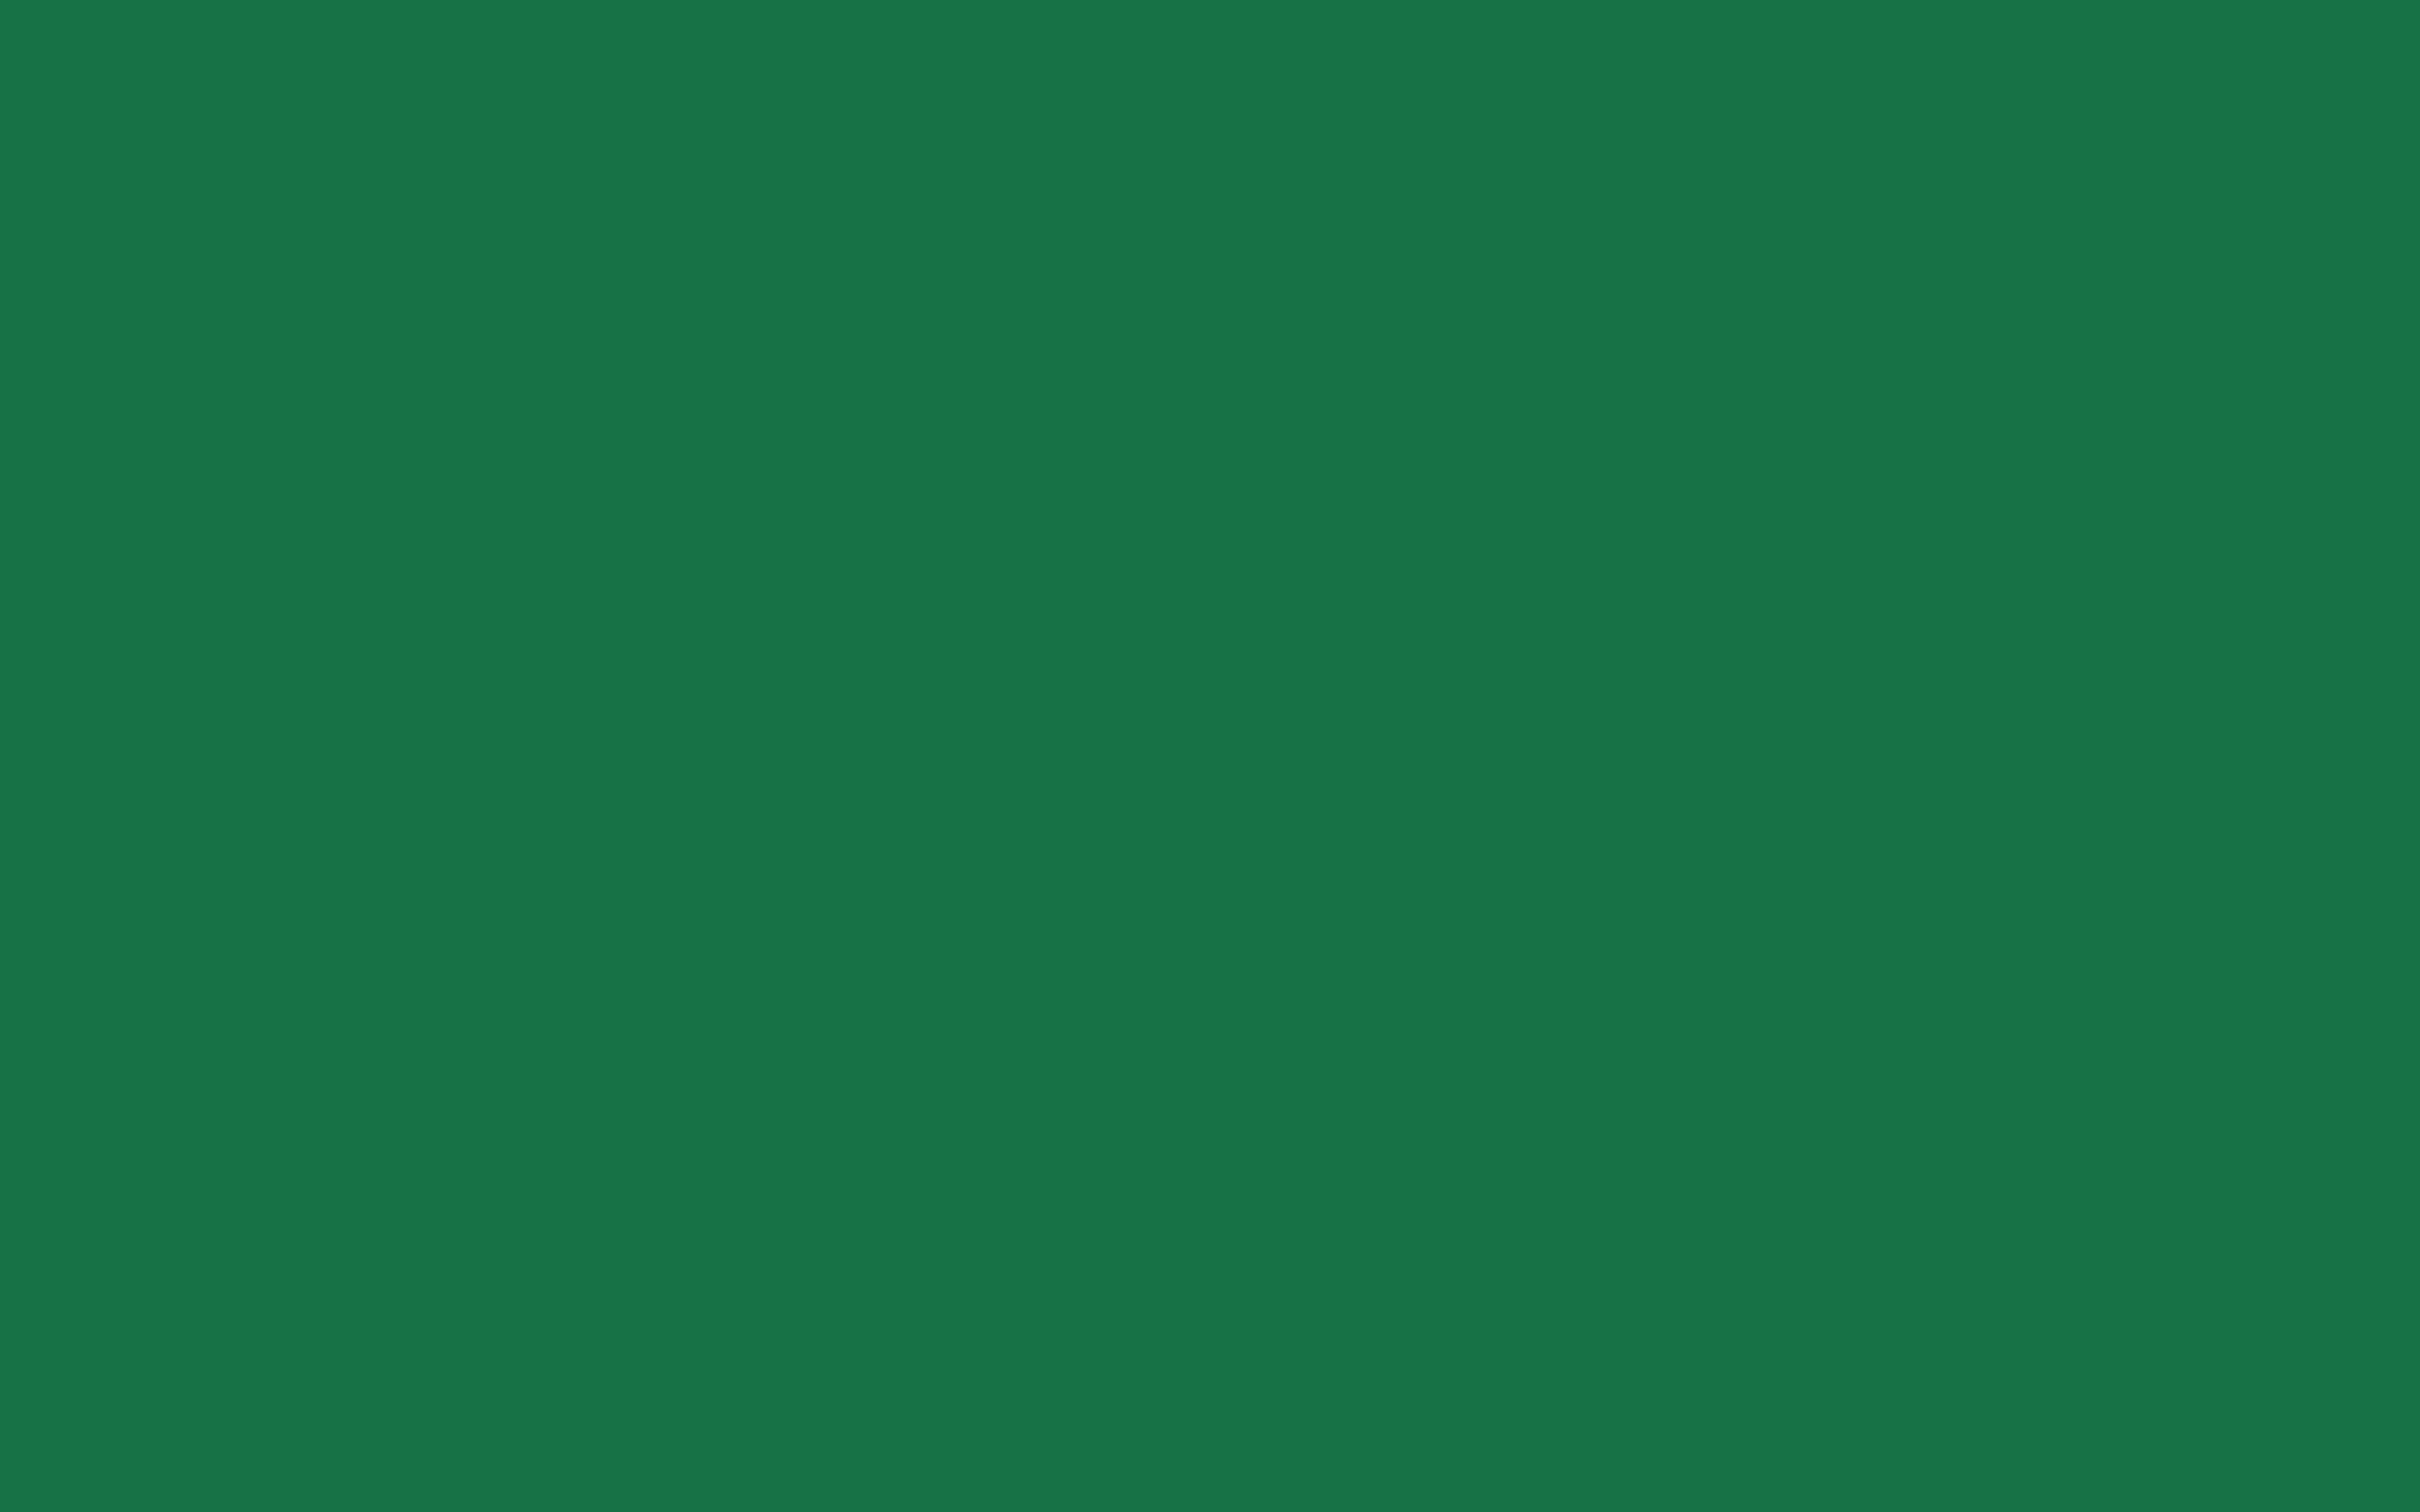 2560x1600 Dark Spring Green Solid Color Background